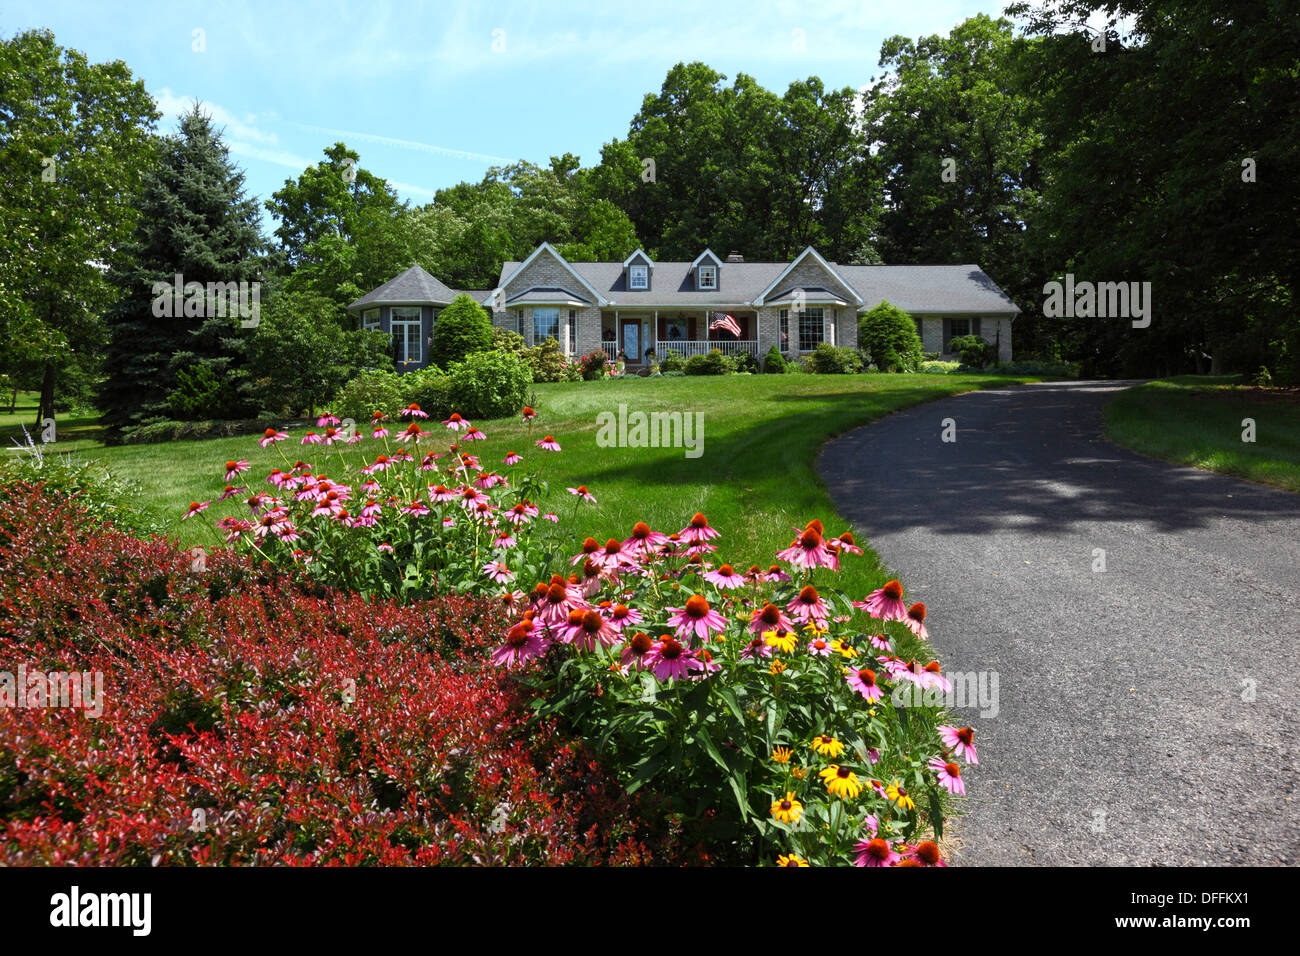 Summer Flowers In Front Garden Of Bungalow Smart Residential Suburb Gettysburg Pennsylvania United States America